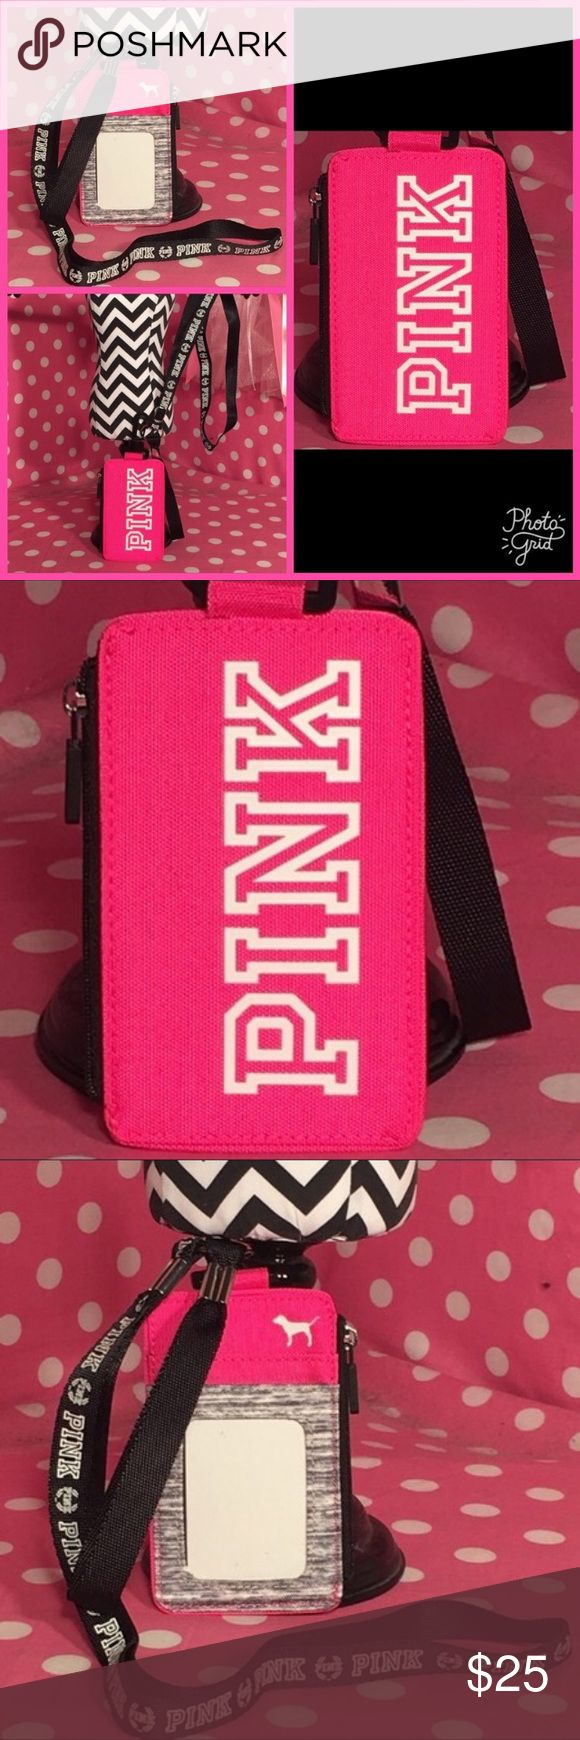 VS Pink lanyard id holder Victoria secret pink lanyard ID holder right up with him pink on one side tomorrow great early and their lack of a strap new tags in packaging PINK Victoria's Secret Accessories Key & Card Holders